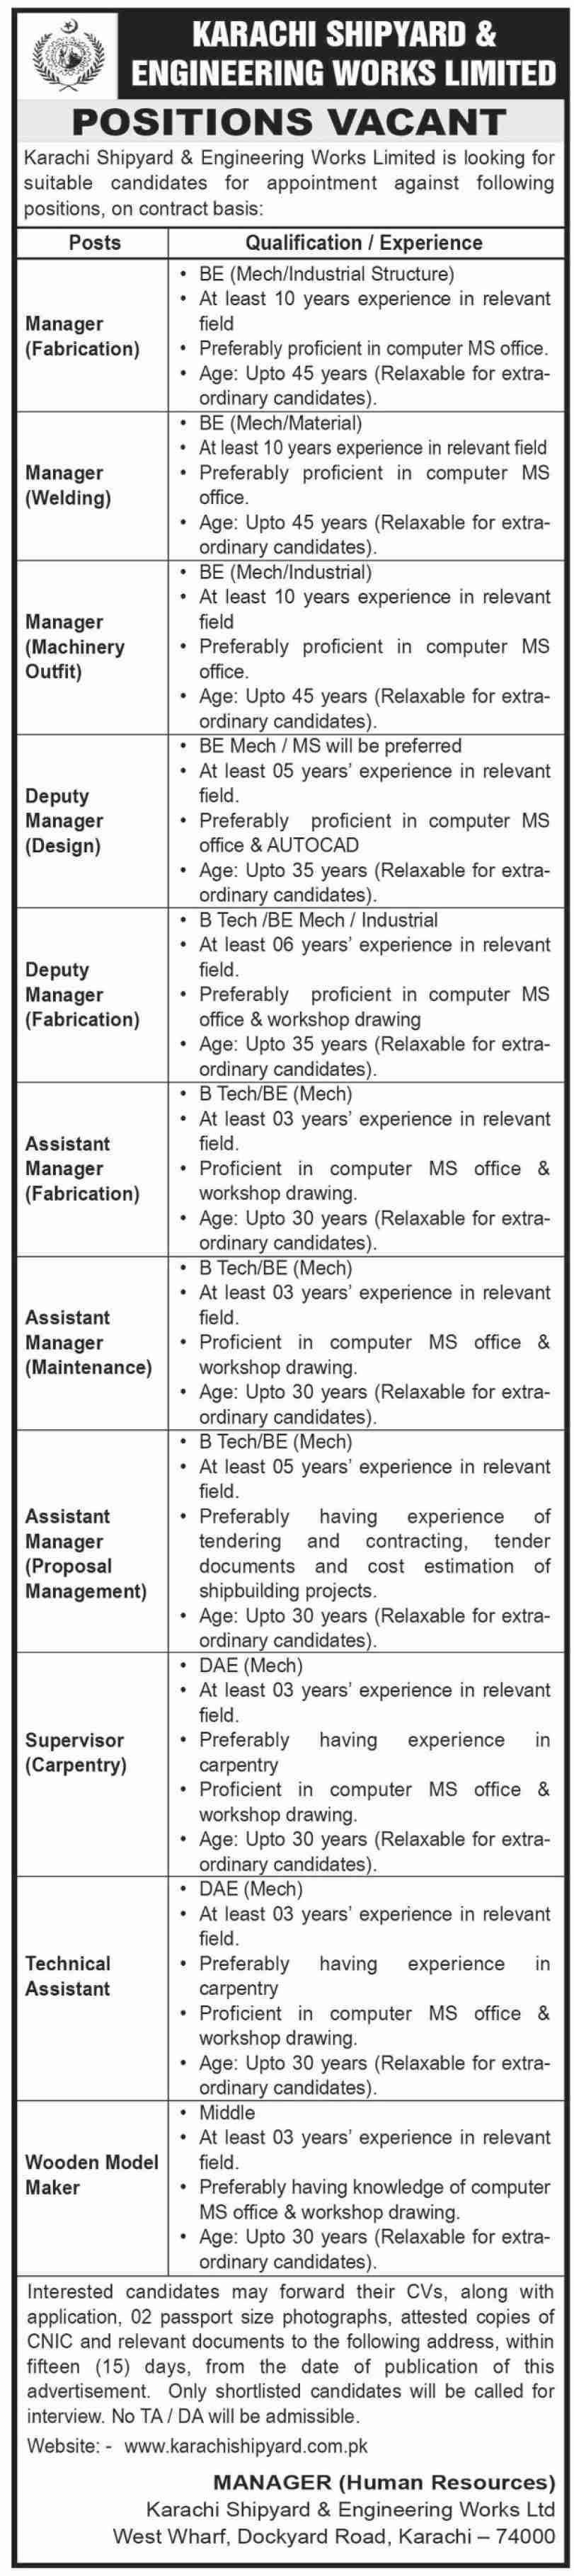 Karachi Shipyard & Engineering Works Limited Jobs 2020 For Managers & Technical Assistant